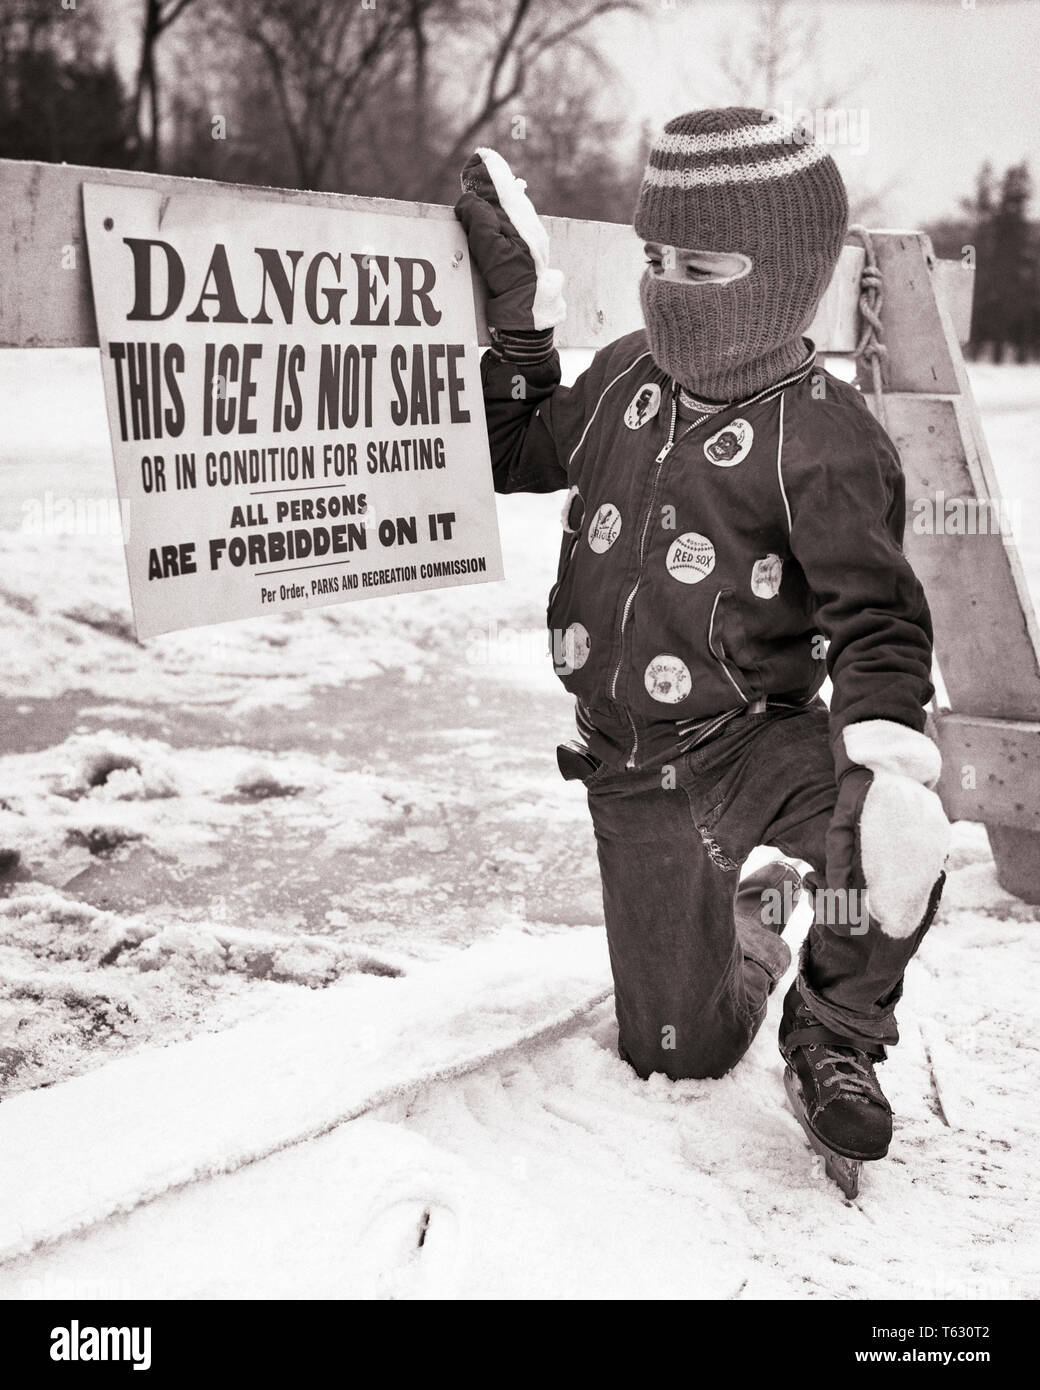 1950s 1960s BOY WEARING ICE SKATES SKI MASK MITTENS WINTER JACKET READING DANGER ICE IS NOT SAFE SIGN - w4949 HAR001 HARS RISK MITTENS ATHLETIC B&W TEMPTATION DISASTER DANGEROUS PROTECTION CHOICE WARNING CONCEPTUAL SKI MASK ICE SKATING JUVENILES NOT SAFE BLACK AND WHITE CAUCASIAN ETHNICITY HAR001 ICE SKATES OLD FASHIONED - Stock Image